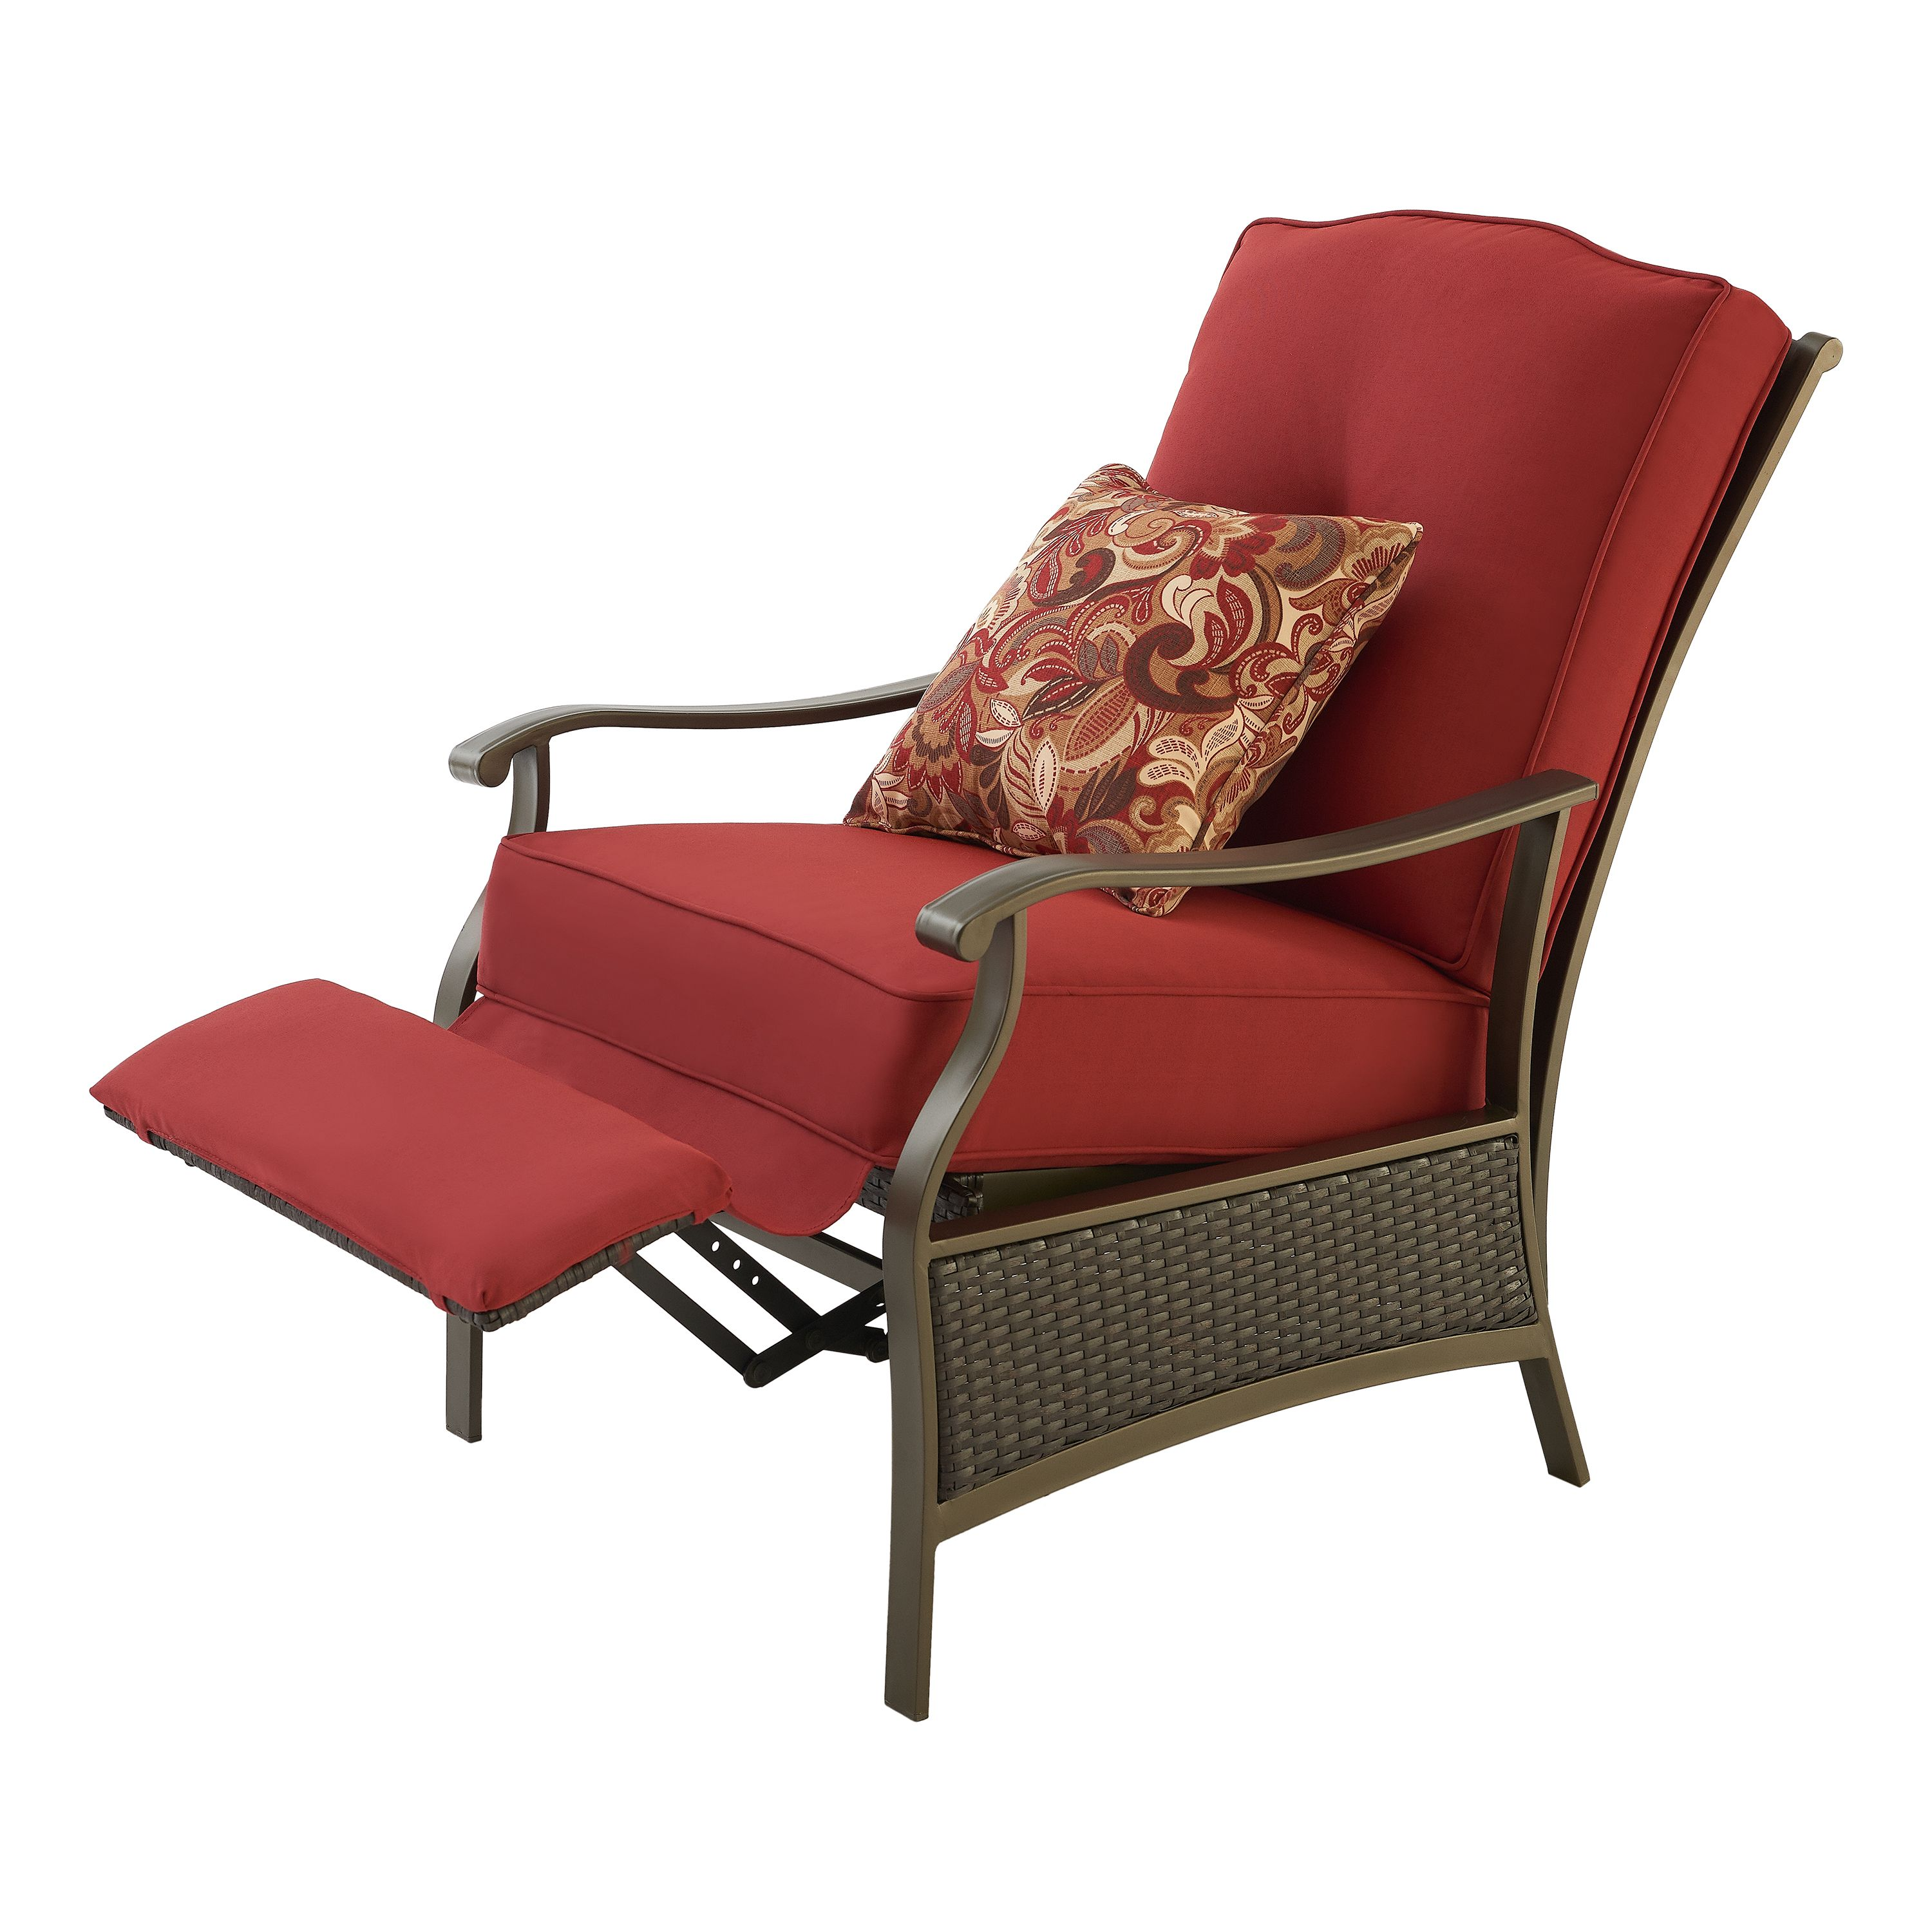 b13fc8696acd82bb90194ad0c8974a0b - Better Homes And Gardens Providence Outdoor Recliner Red